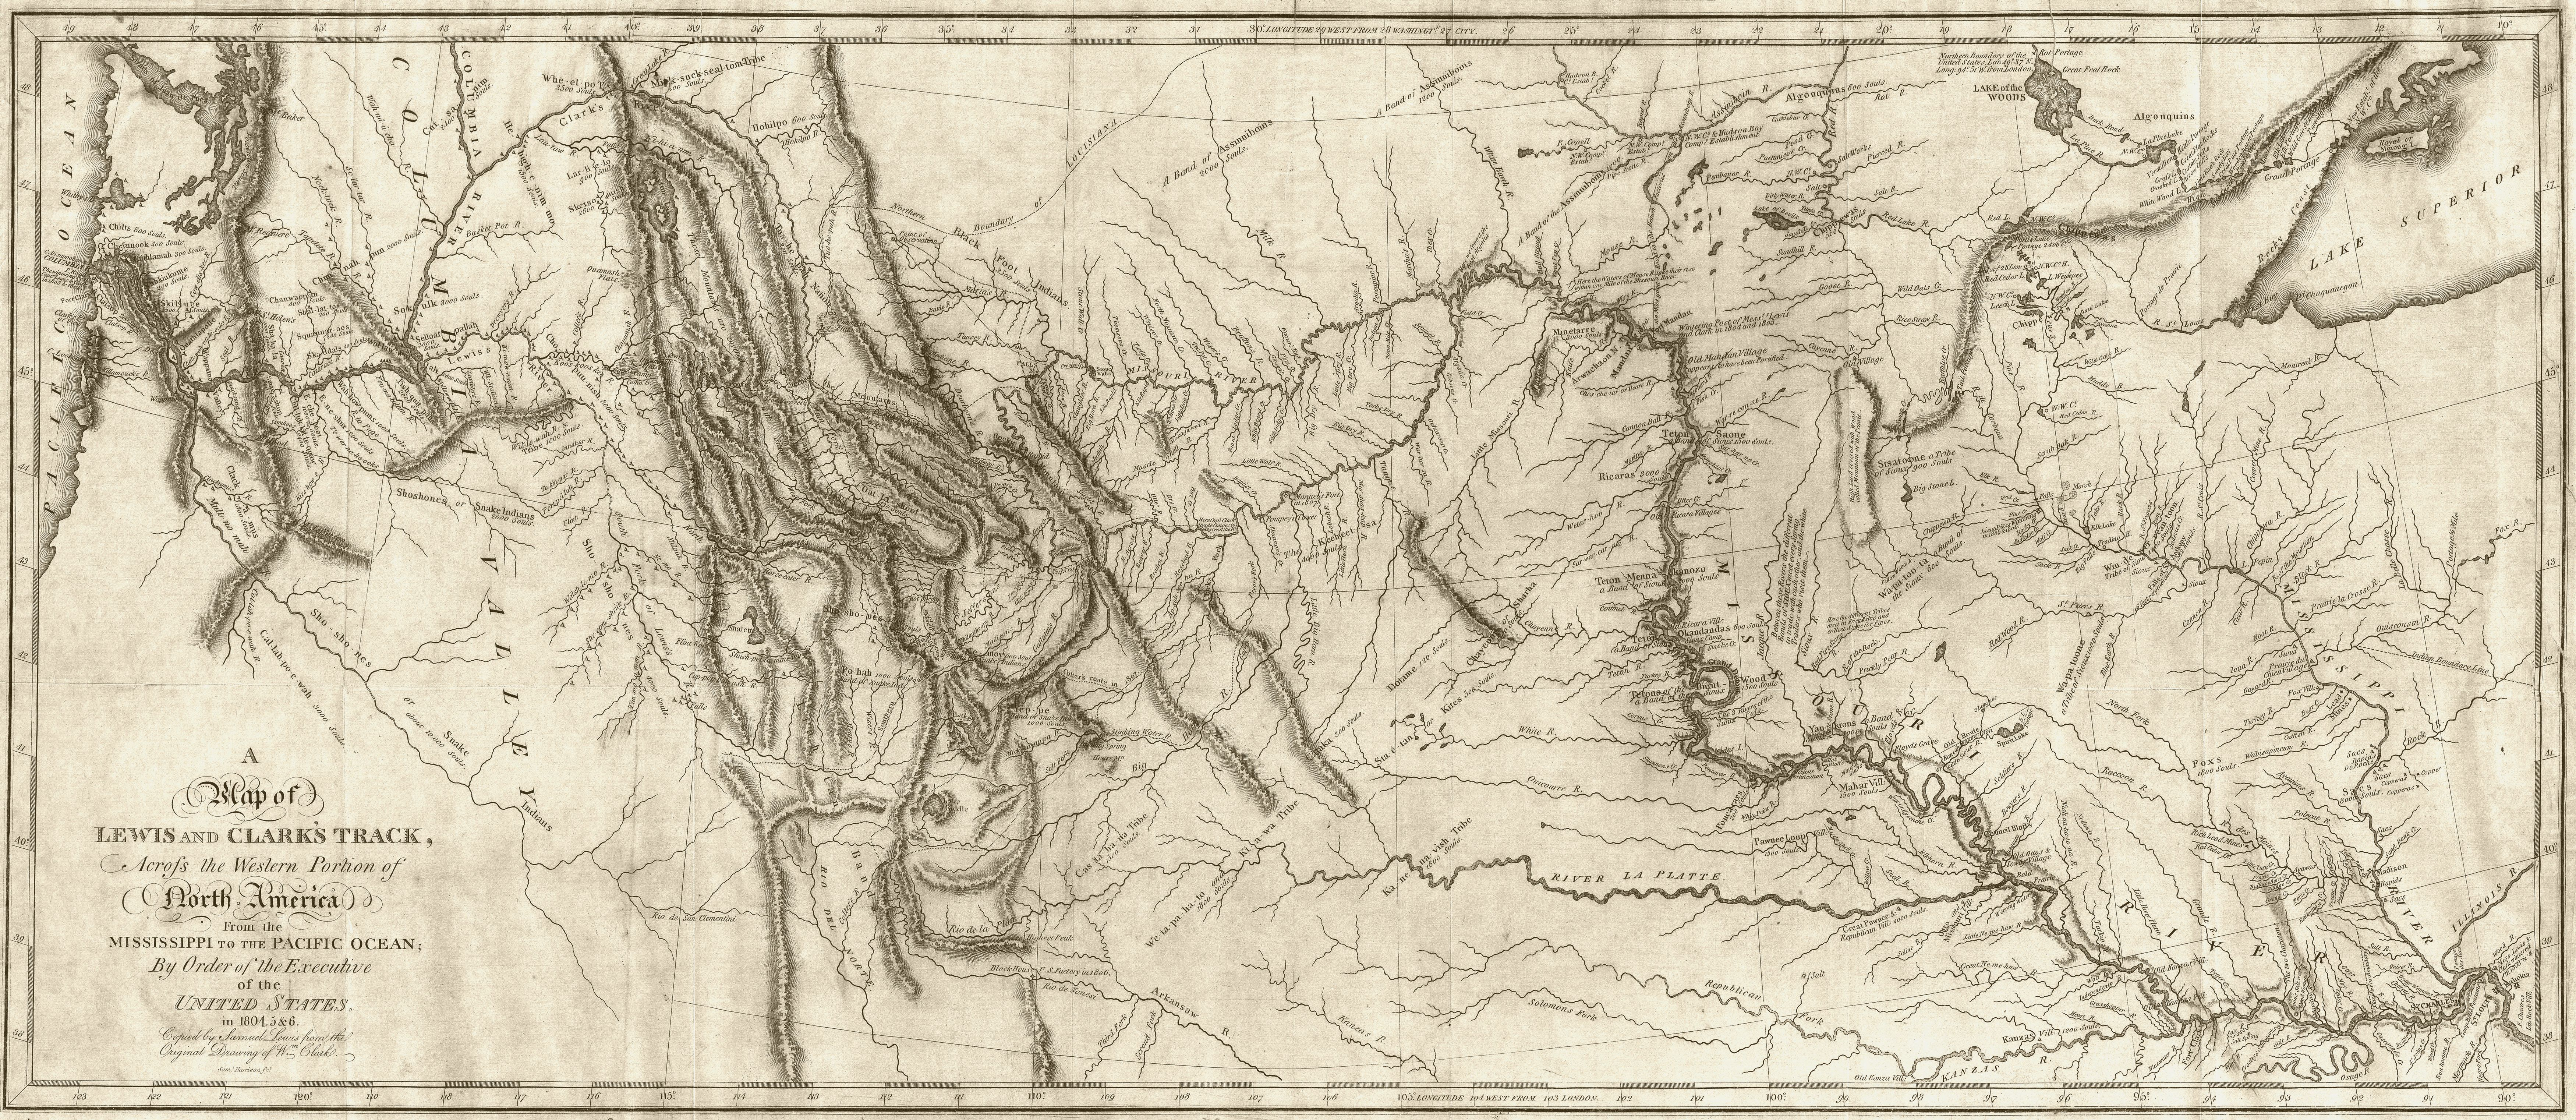 Pin de Trappin en Lewis and Clark Expedition Maps | Pinterest